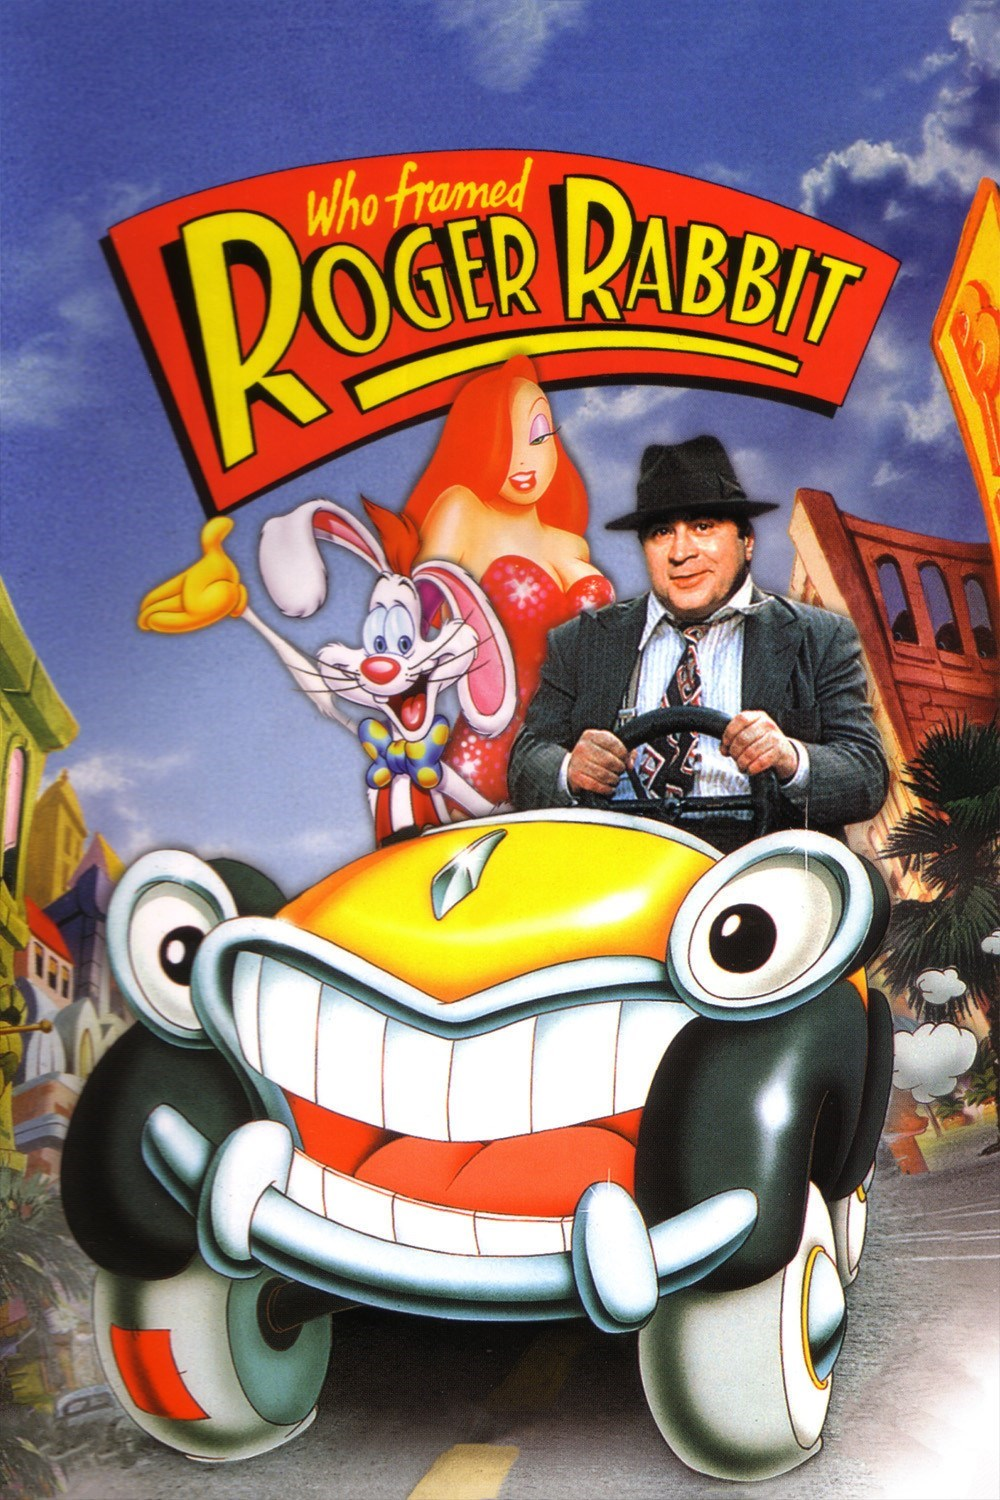 who-framed-roger-rabbit.28048.jpg